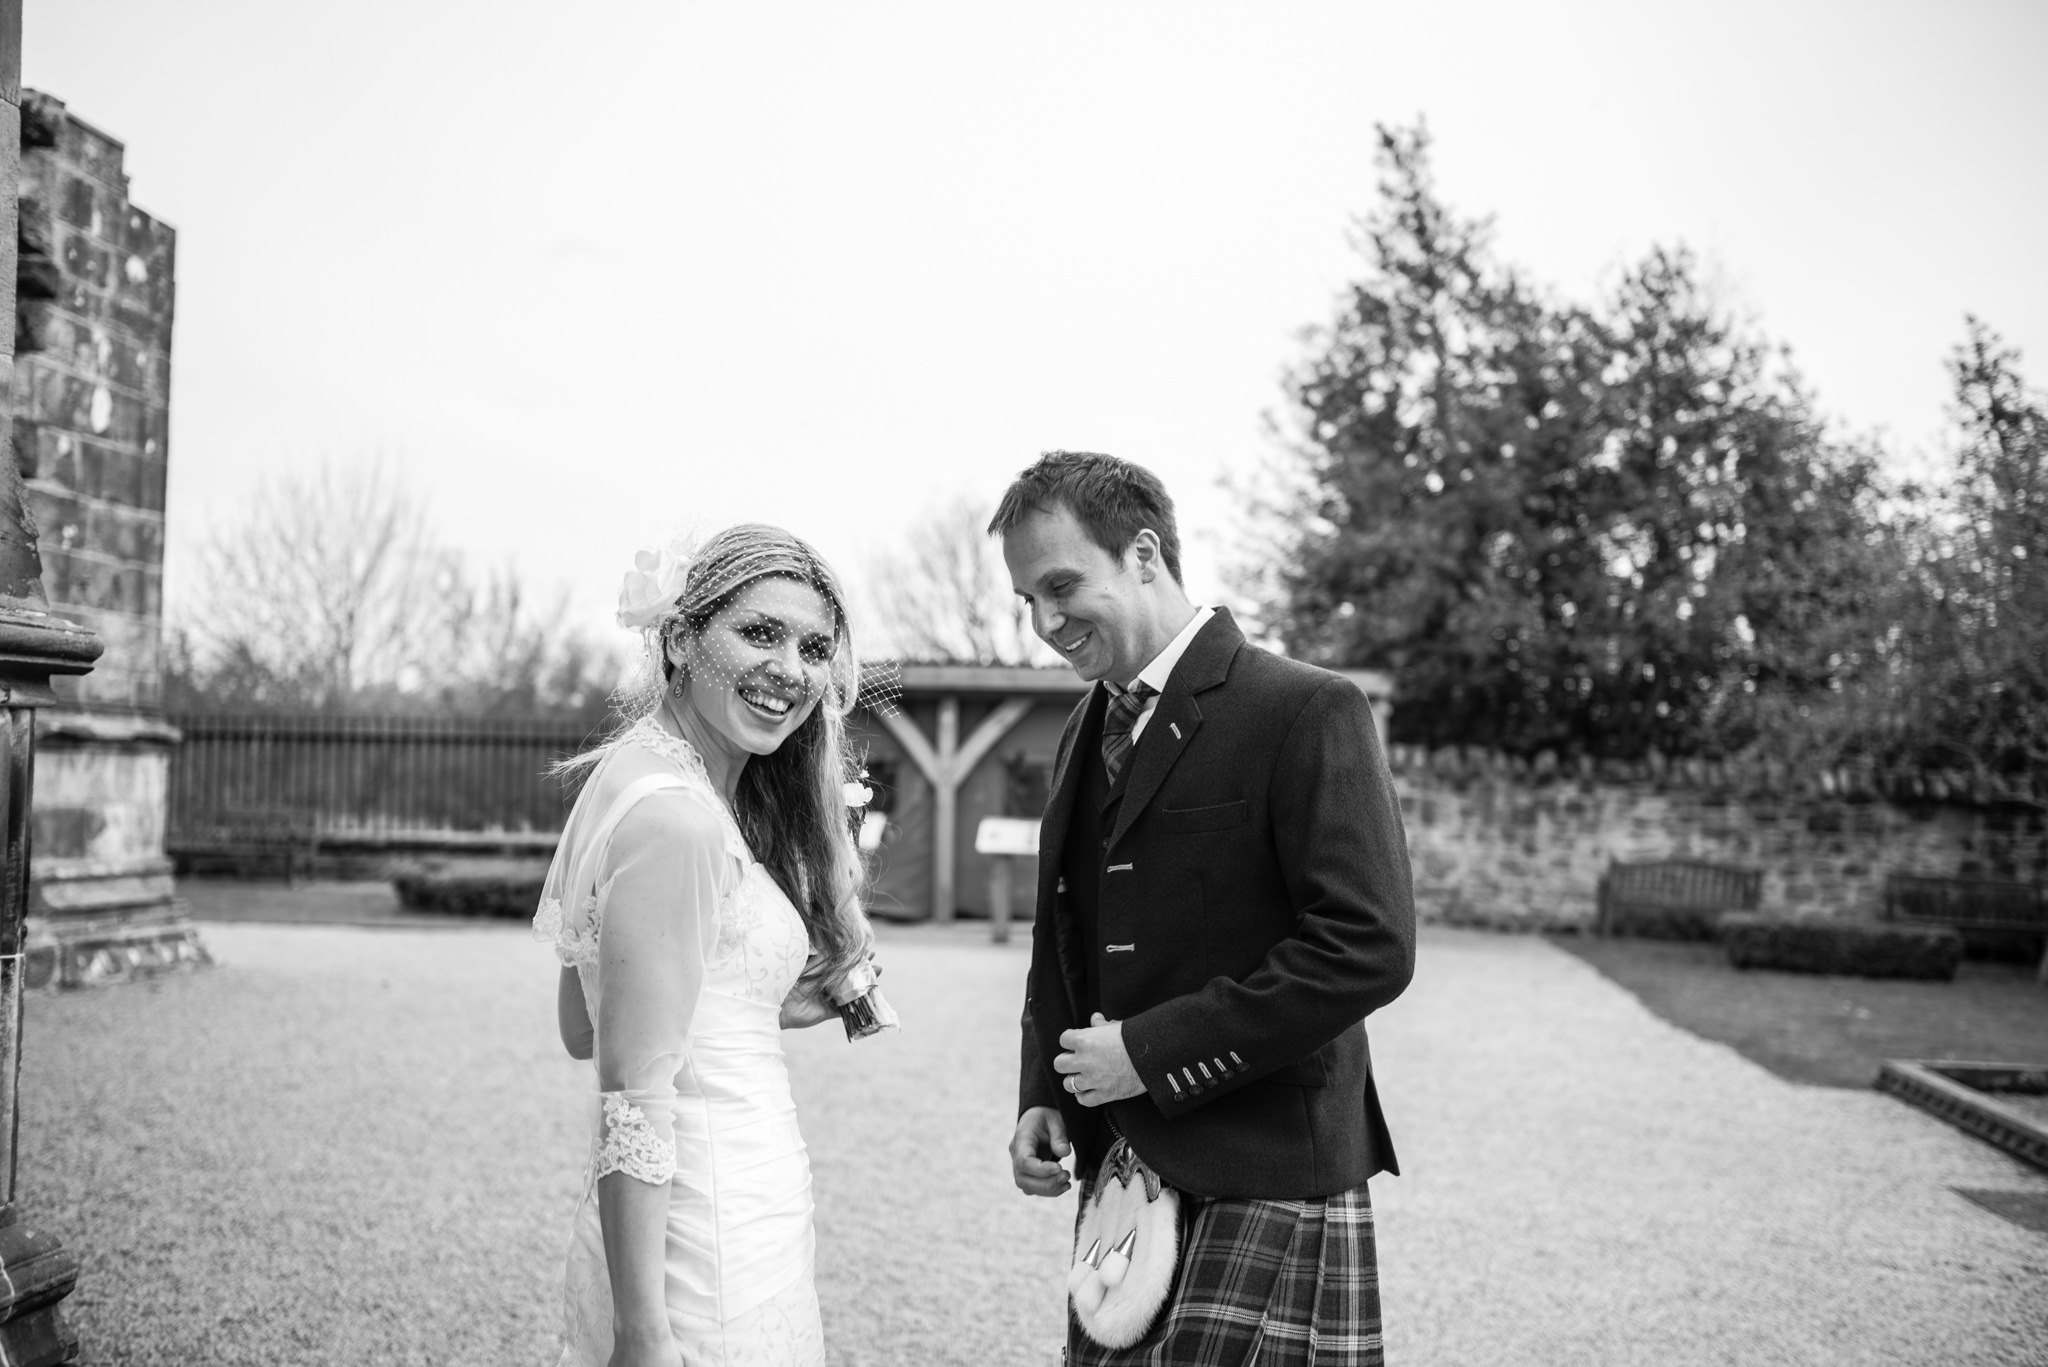 Douglas and Daria's wedding at Rosslyn Chapel - 24 April 2016 - © Photography by Juliebee